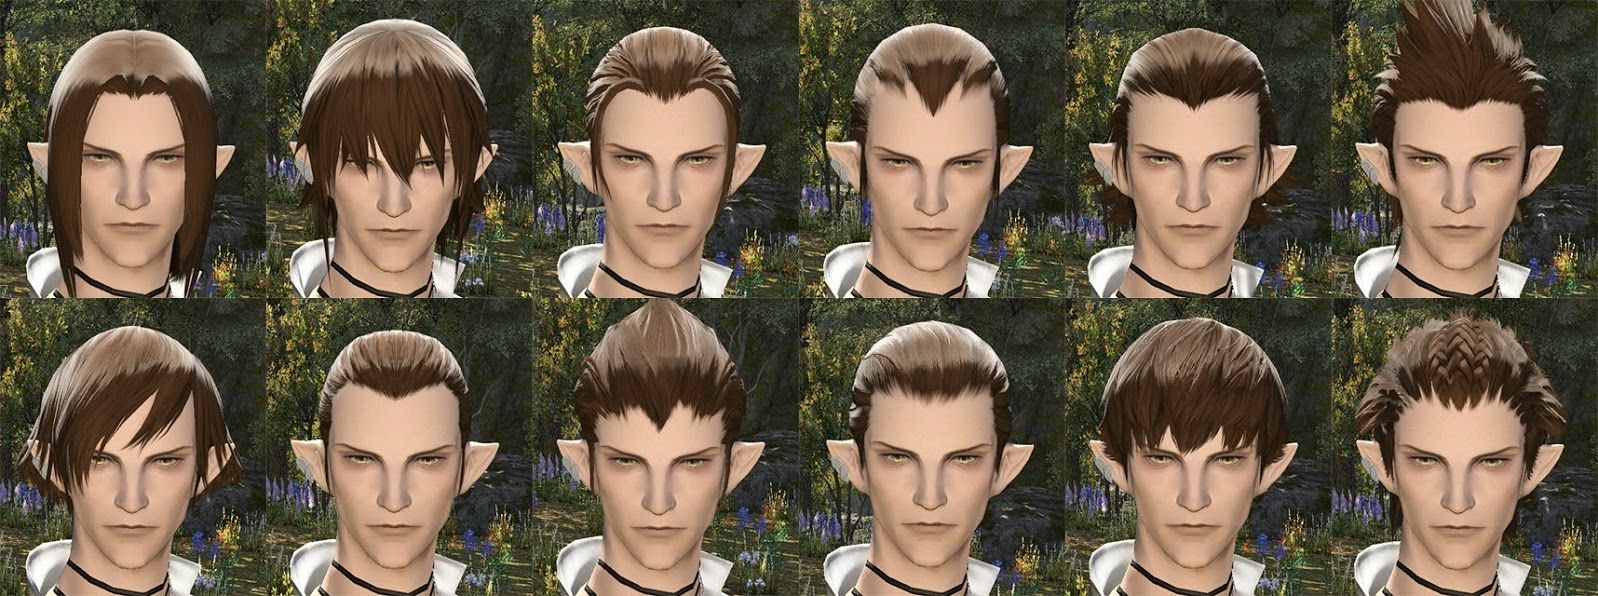 Pin by sigma on Character_Haire | Ffxiv character, Character